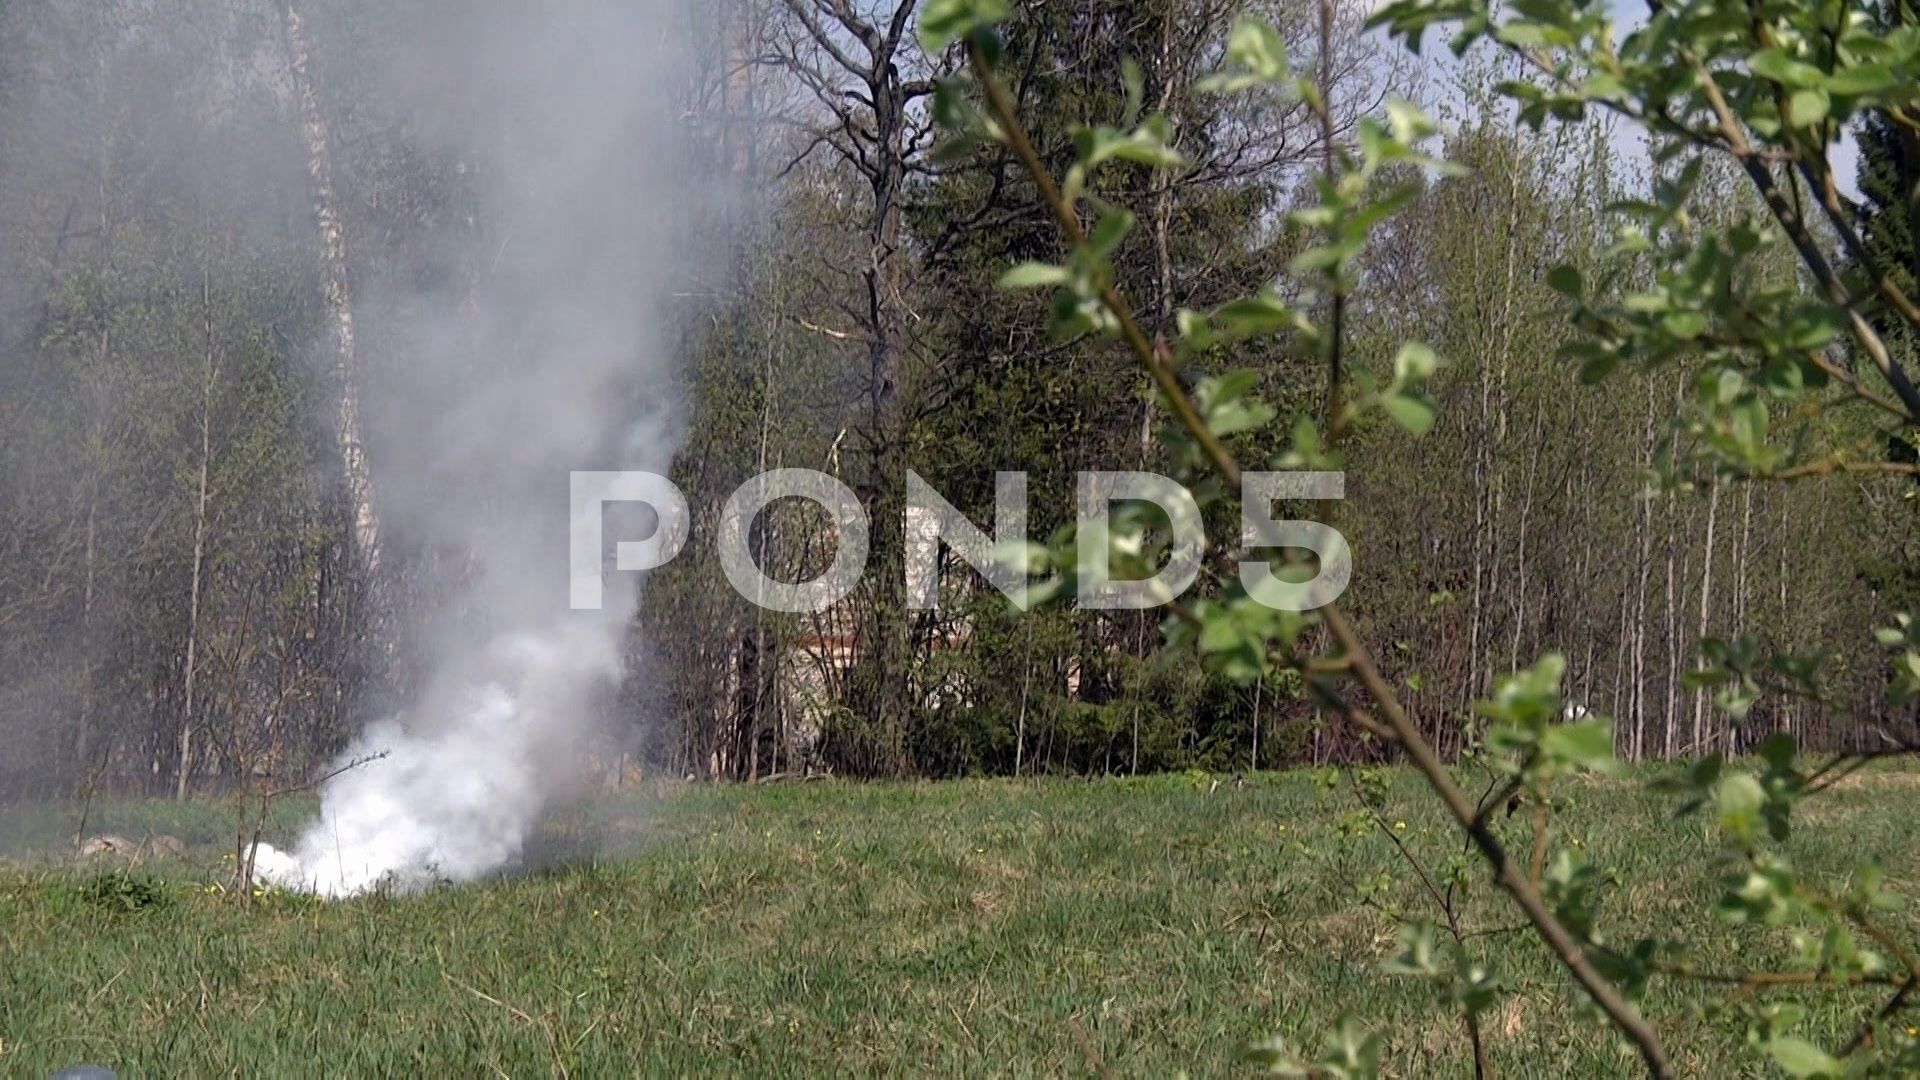 Smoke from fire in the forest. Stock Footage #AD ,#fire#Smoke#forest#Footage